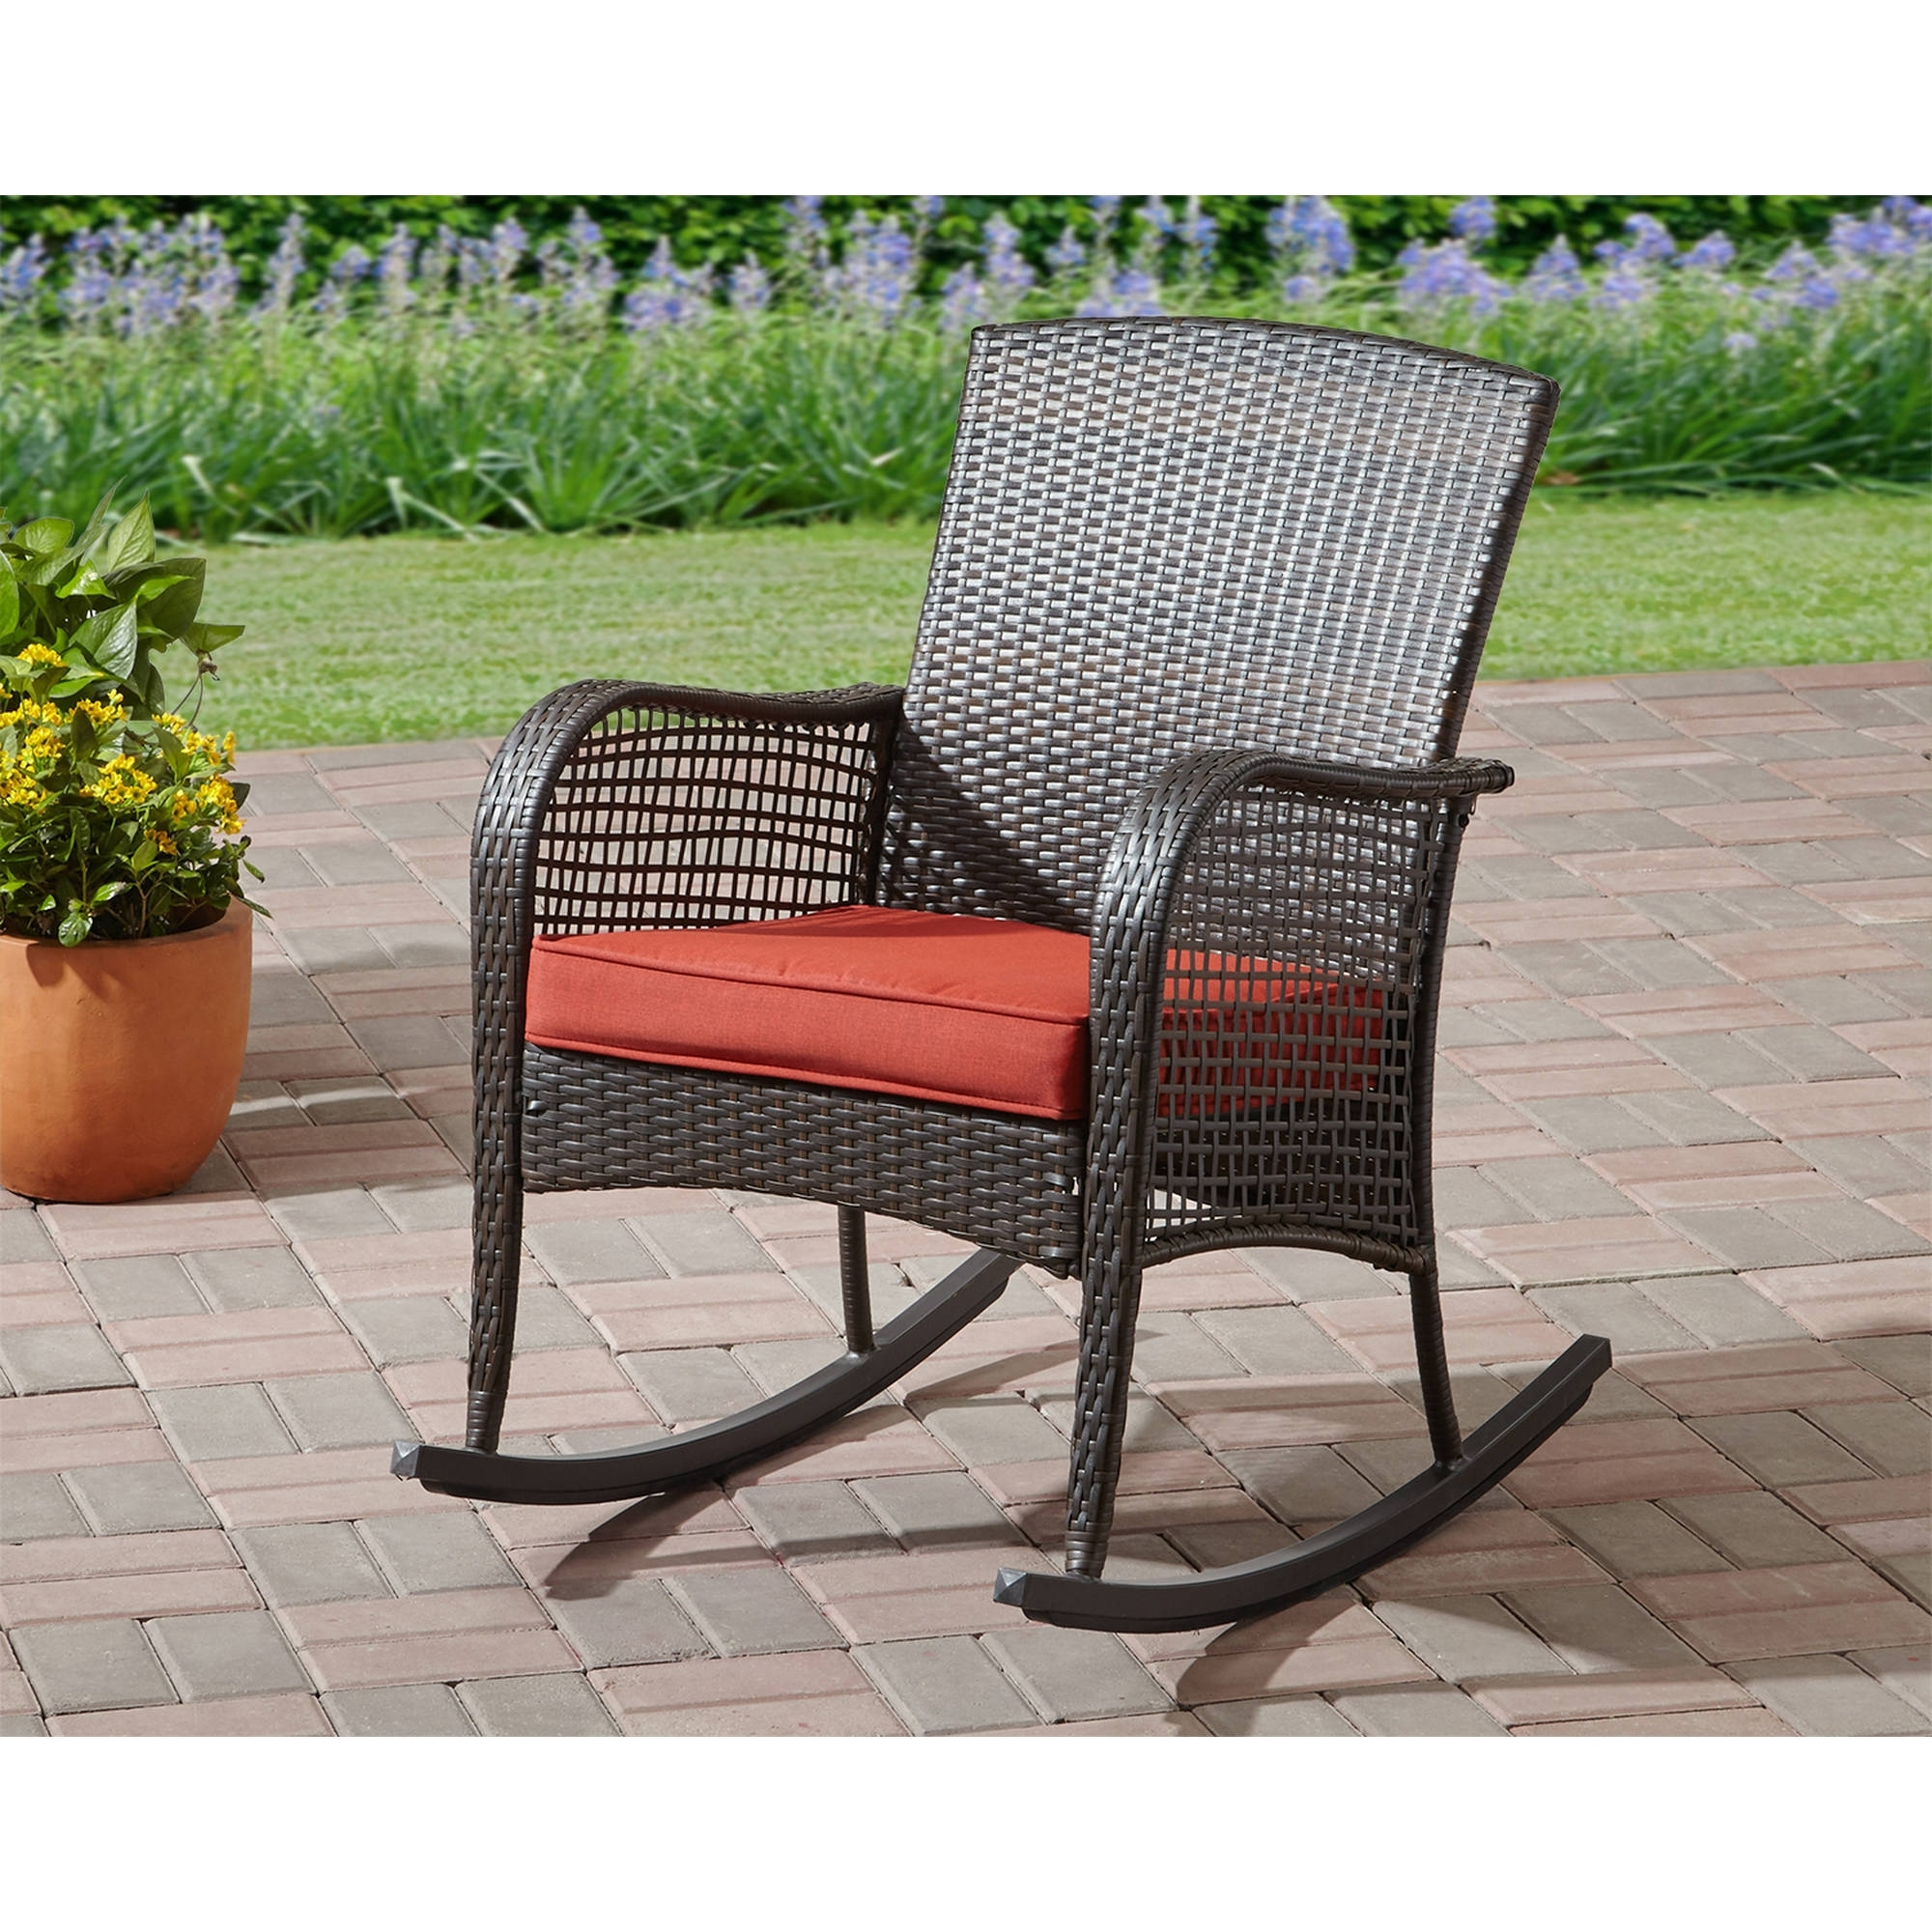 Outdoor Wicker Rocking Chairs With Regard To Preferred Rocking Chair Cushion Seat Wicker Steel Frame Outdoor Patio Deck (View 11 of 15)